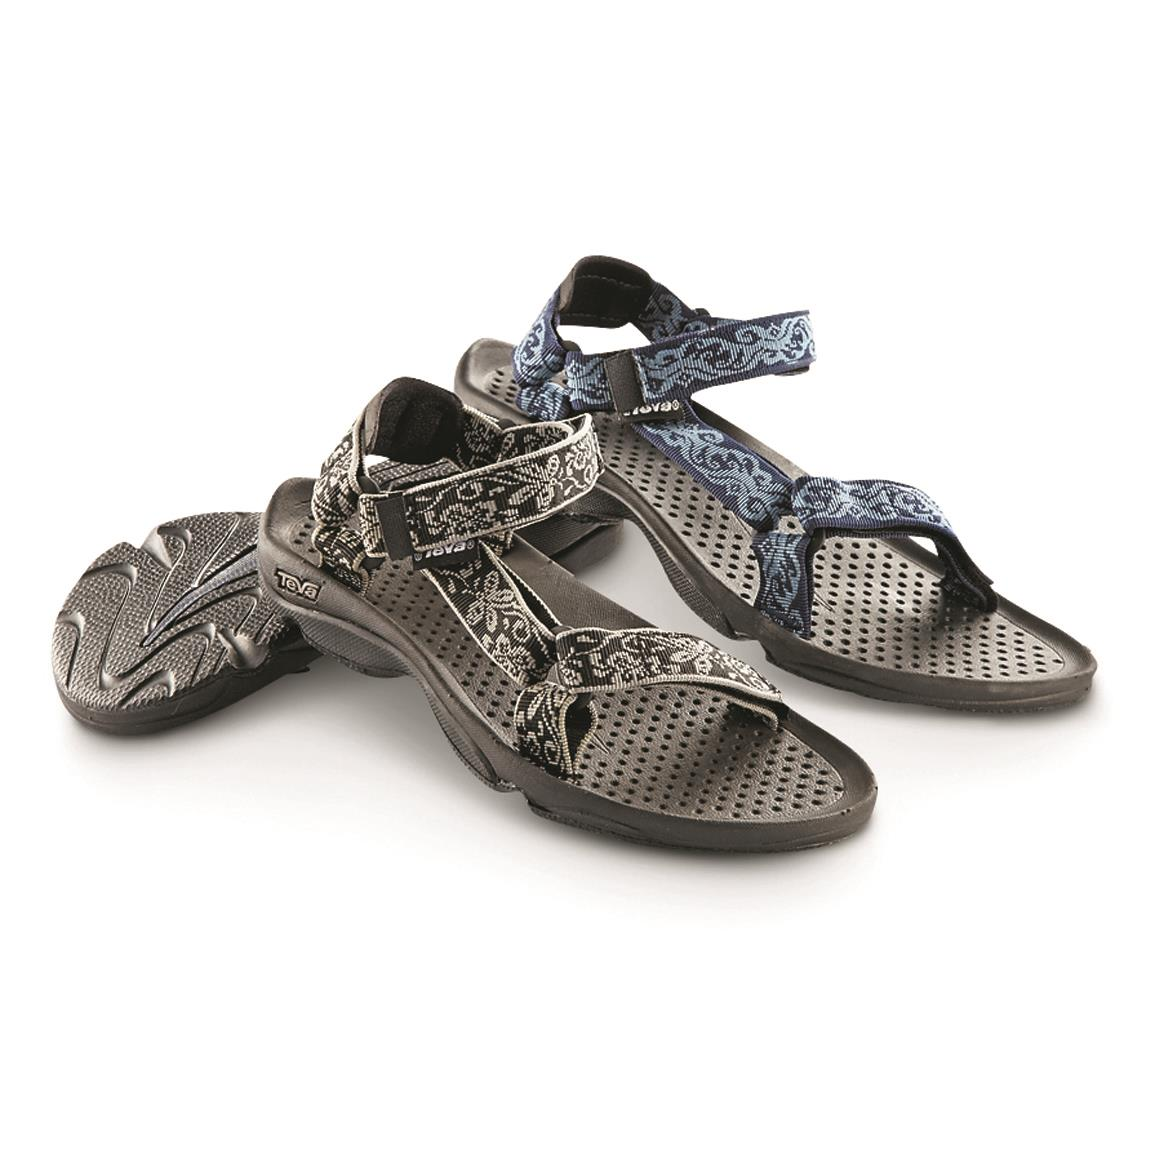 Teva Women's Hurricane 3 Sandals